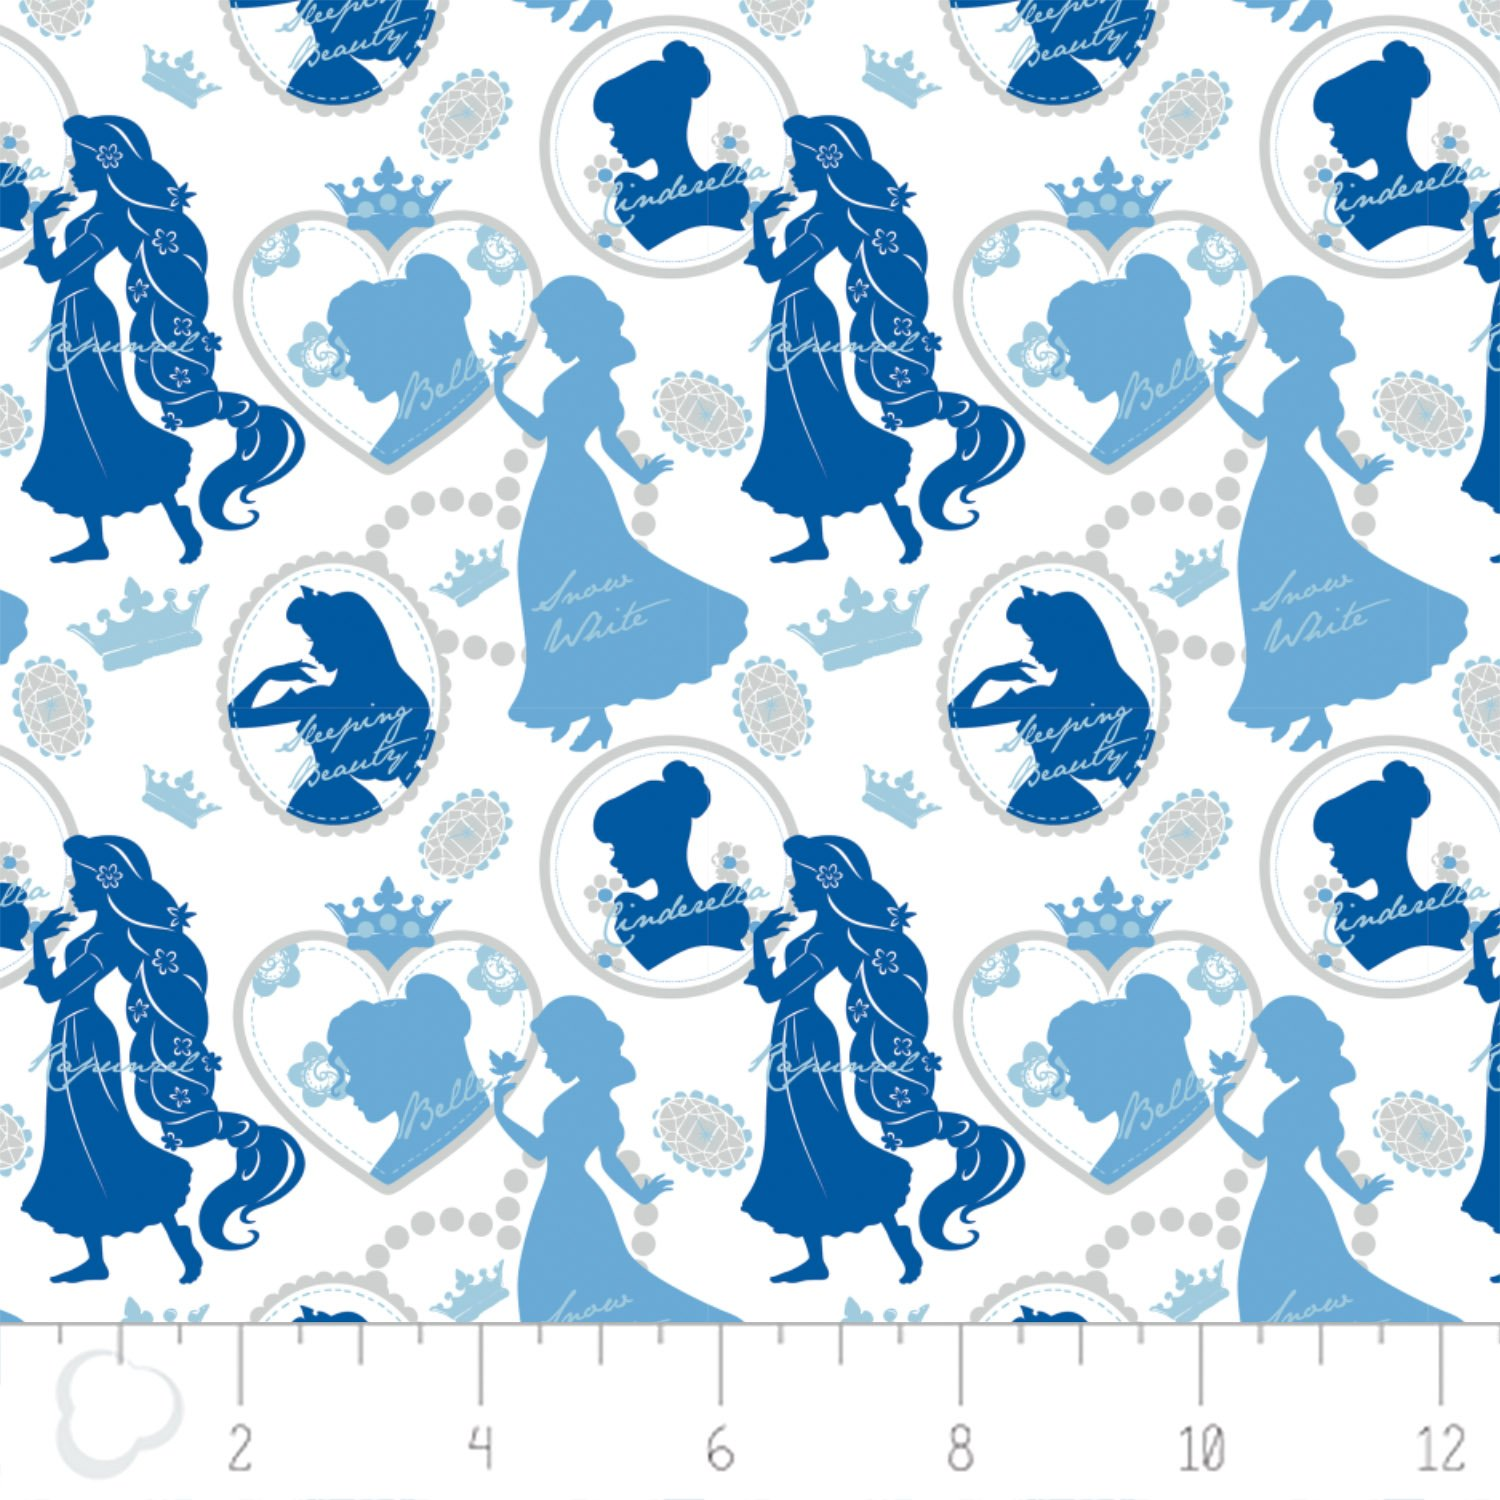 Camelot - Disney Princesses - Silhouette in Blue